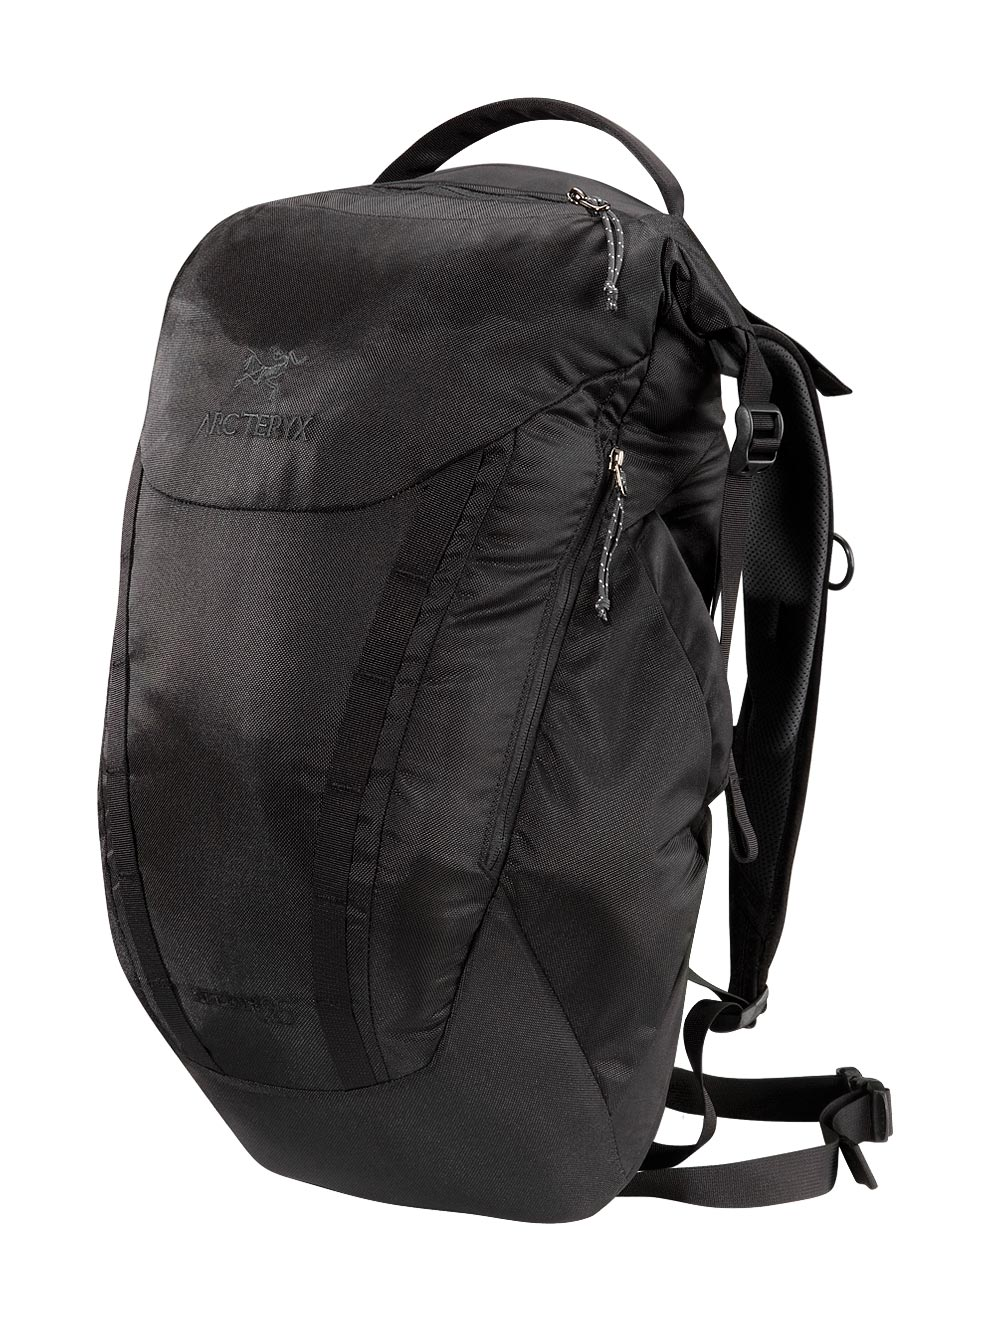 Arcteryx Black Spear 25